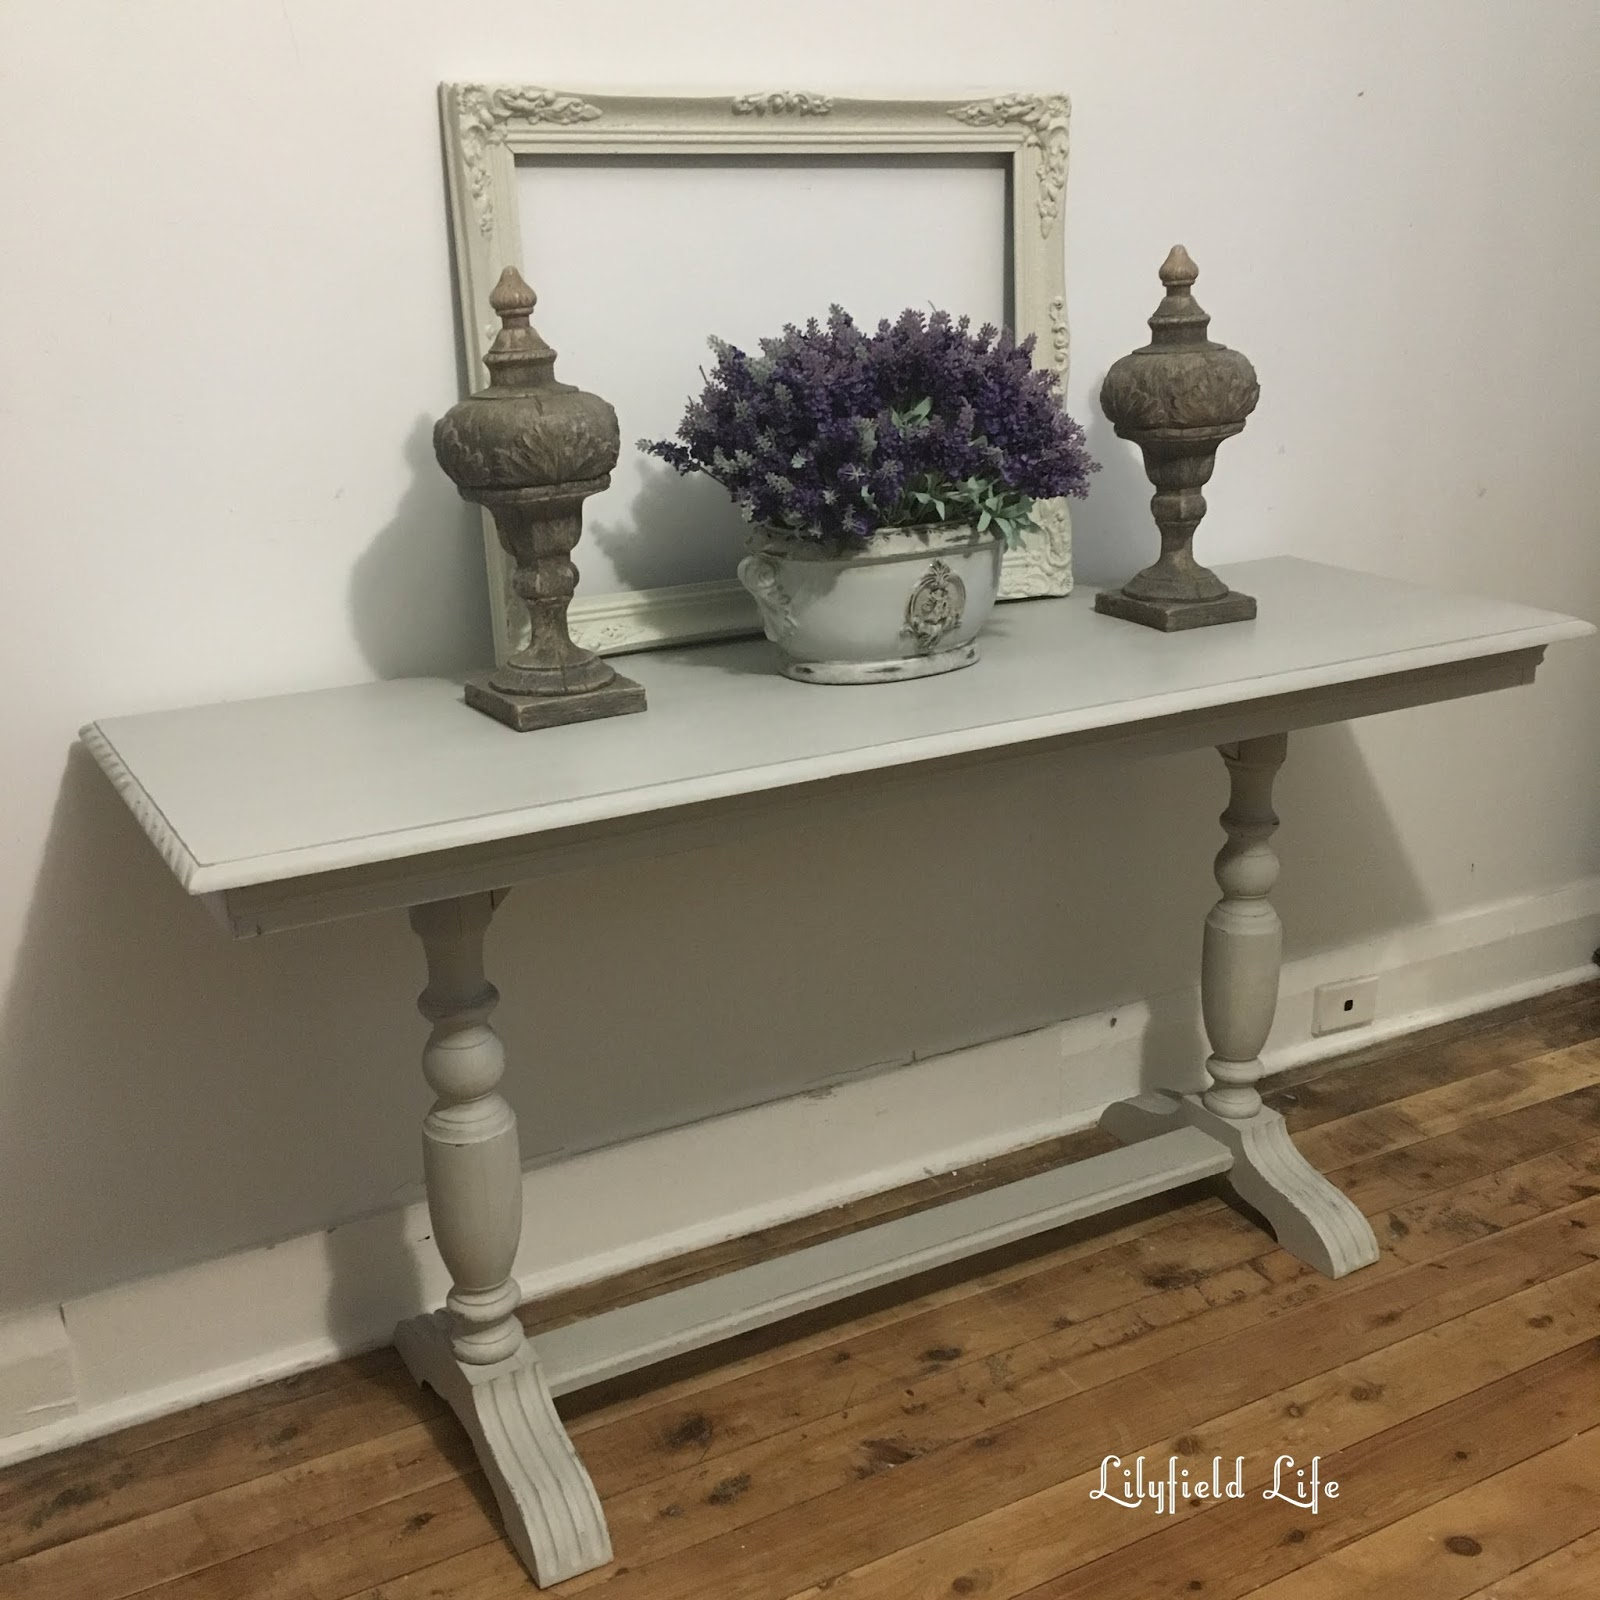 Vintage Hall Table Lilyfield Life Available Console Hall Tables And A New Start